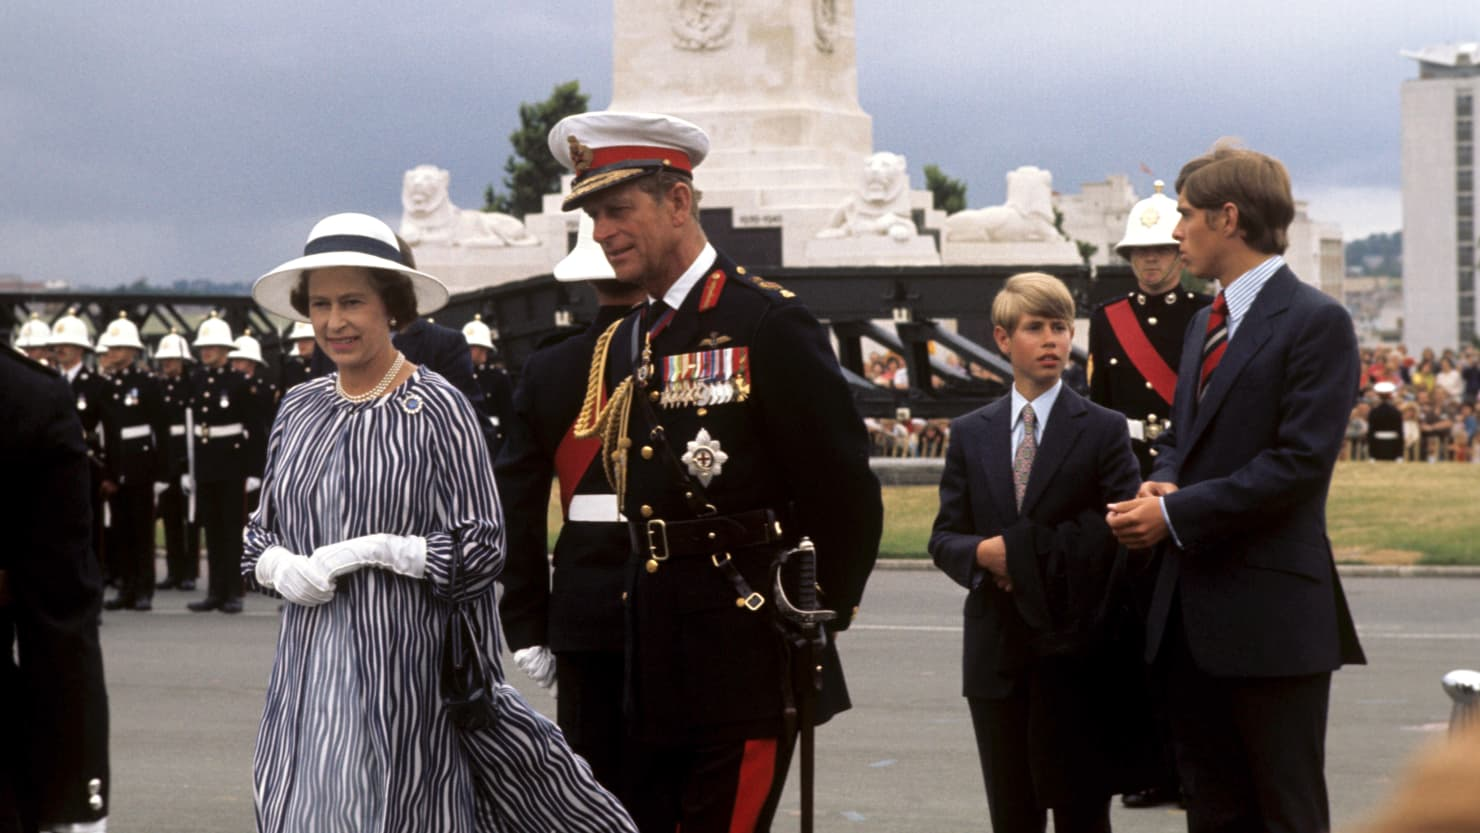 Queen Elizabeth II and the Duke of Edinburgh review the Royal Marines on Plymouth Hoe during the Queen's Silver Jubilee Tour of Great Britain in 1977 (Press Association)